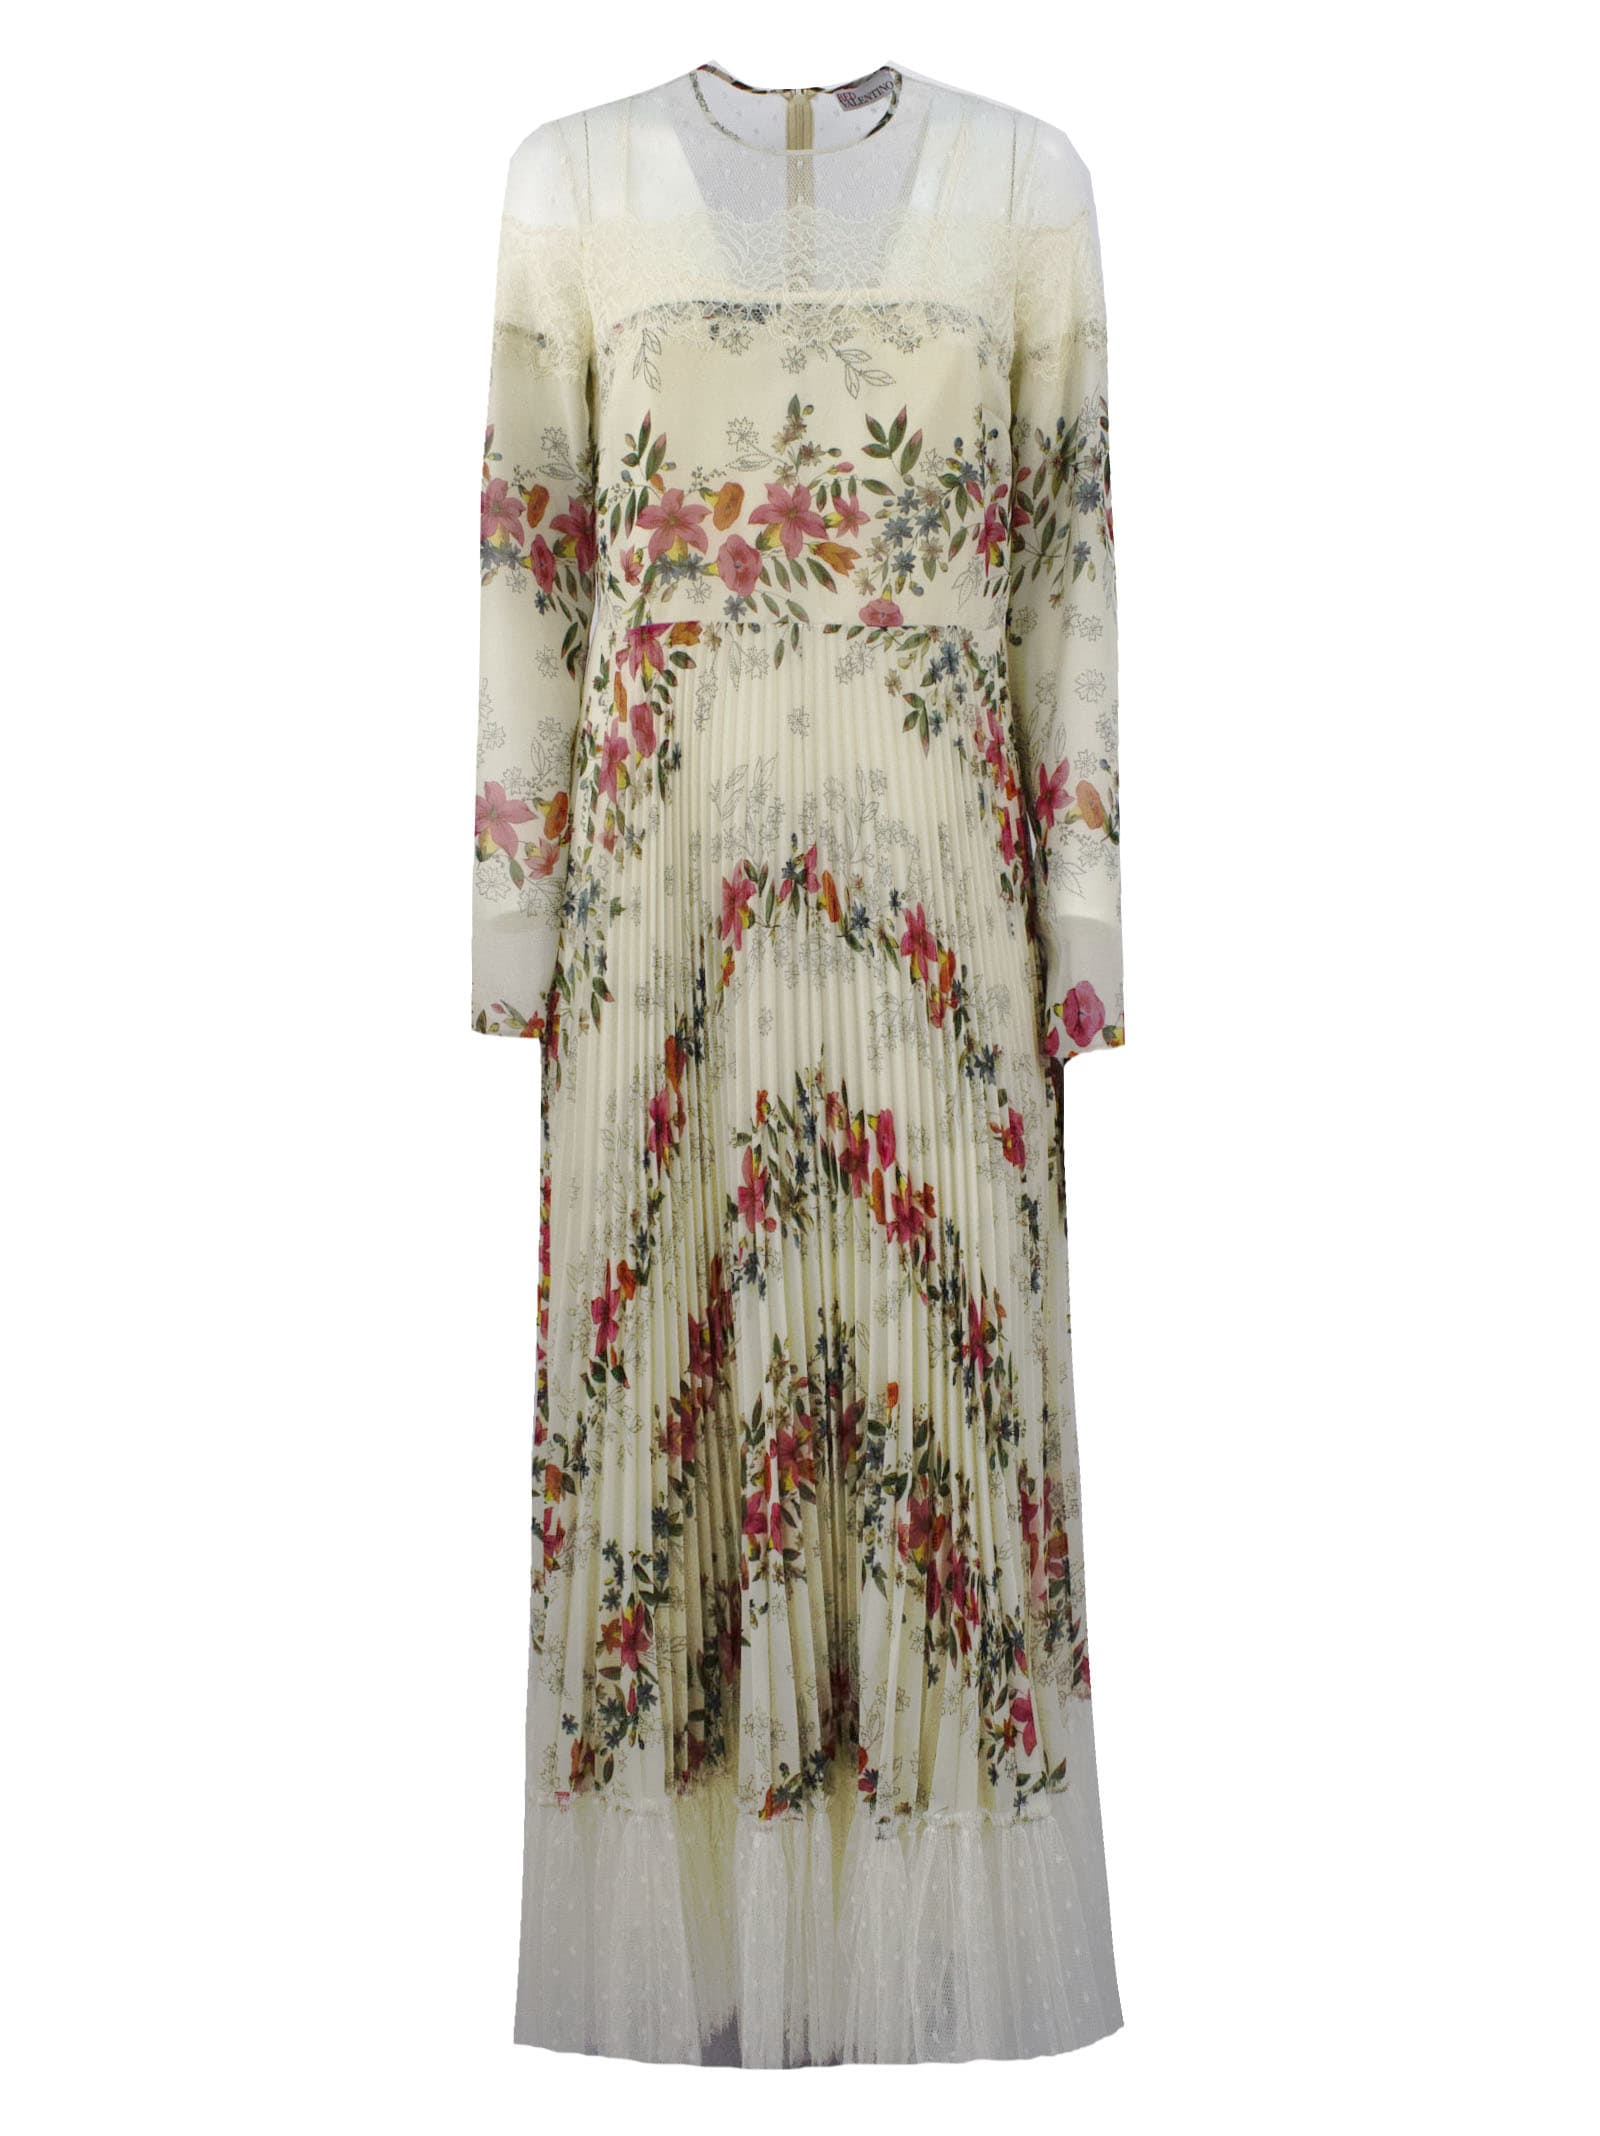 Buy RED Valentino Floral Flounces Printed Muslin Dress online, shop RED Valentino with free shipping